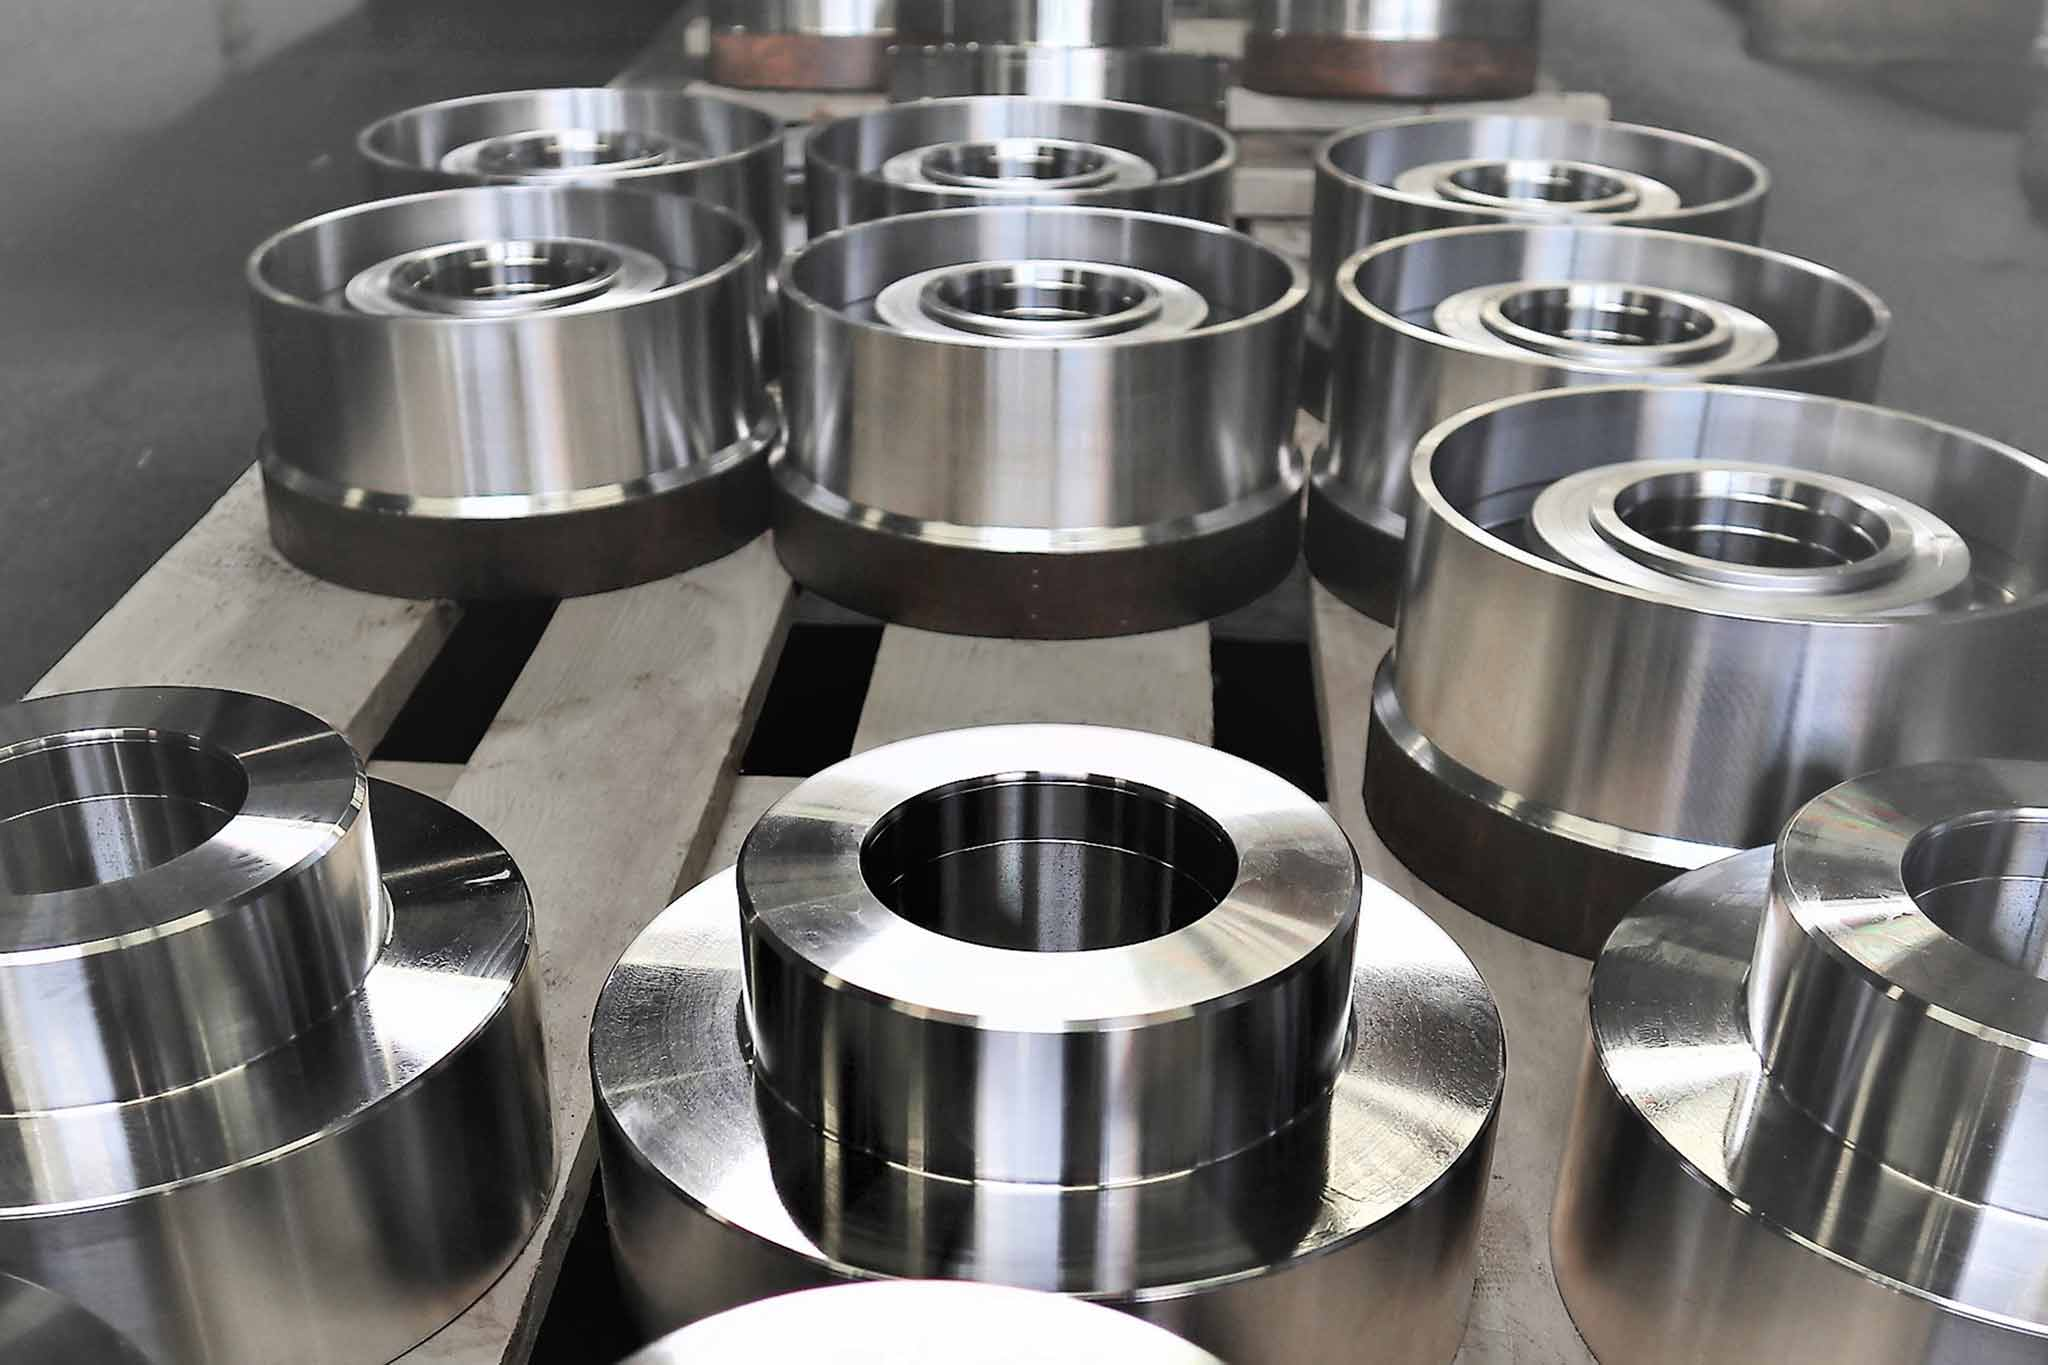 You can see workpieces that are manufactured at Völlm. They are turned, milled and ground.